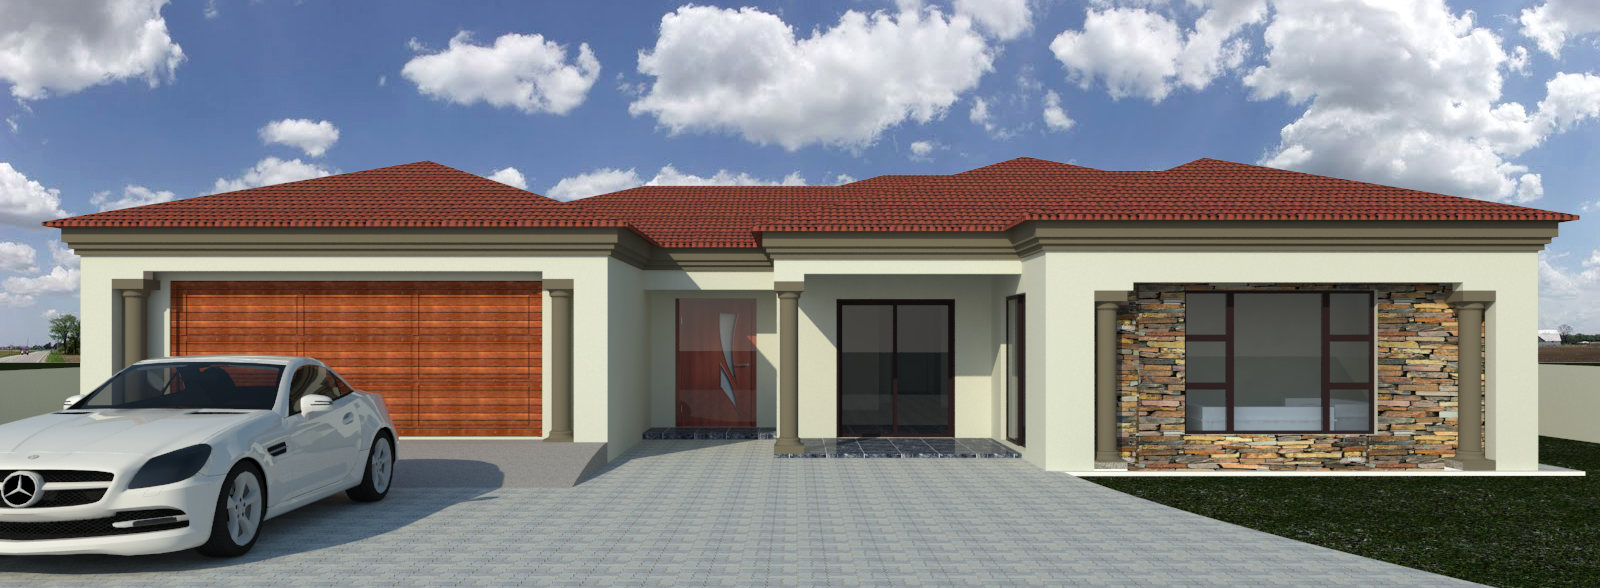 My house plans south africa my house plans most affordable way to build your home house Design my home